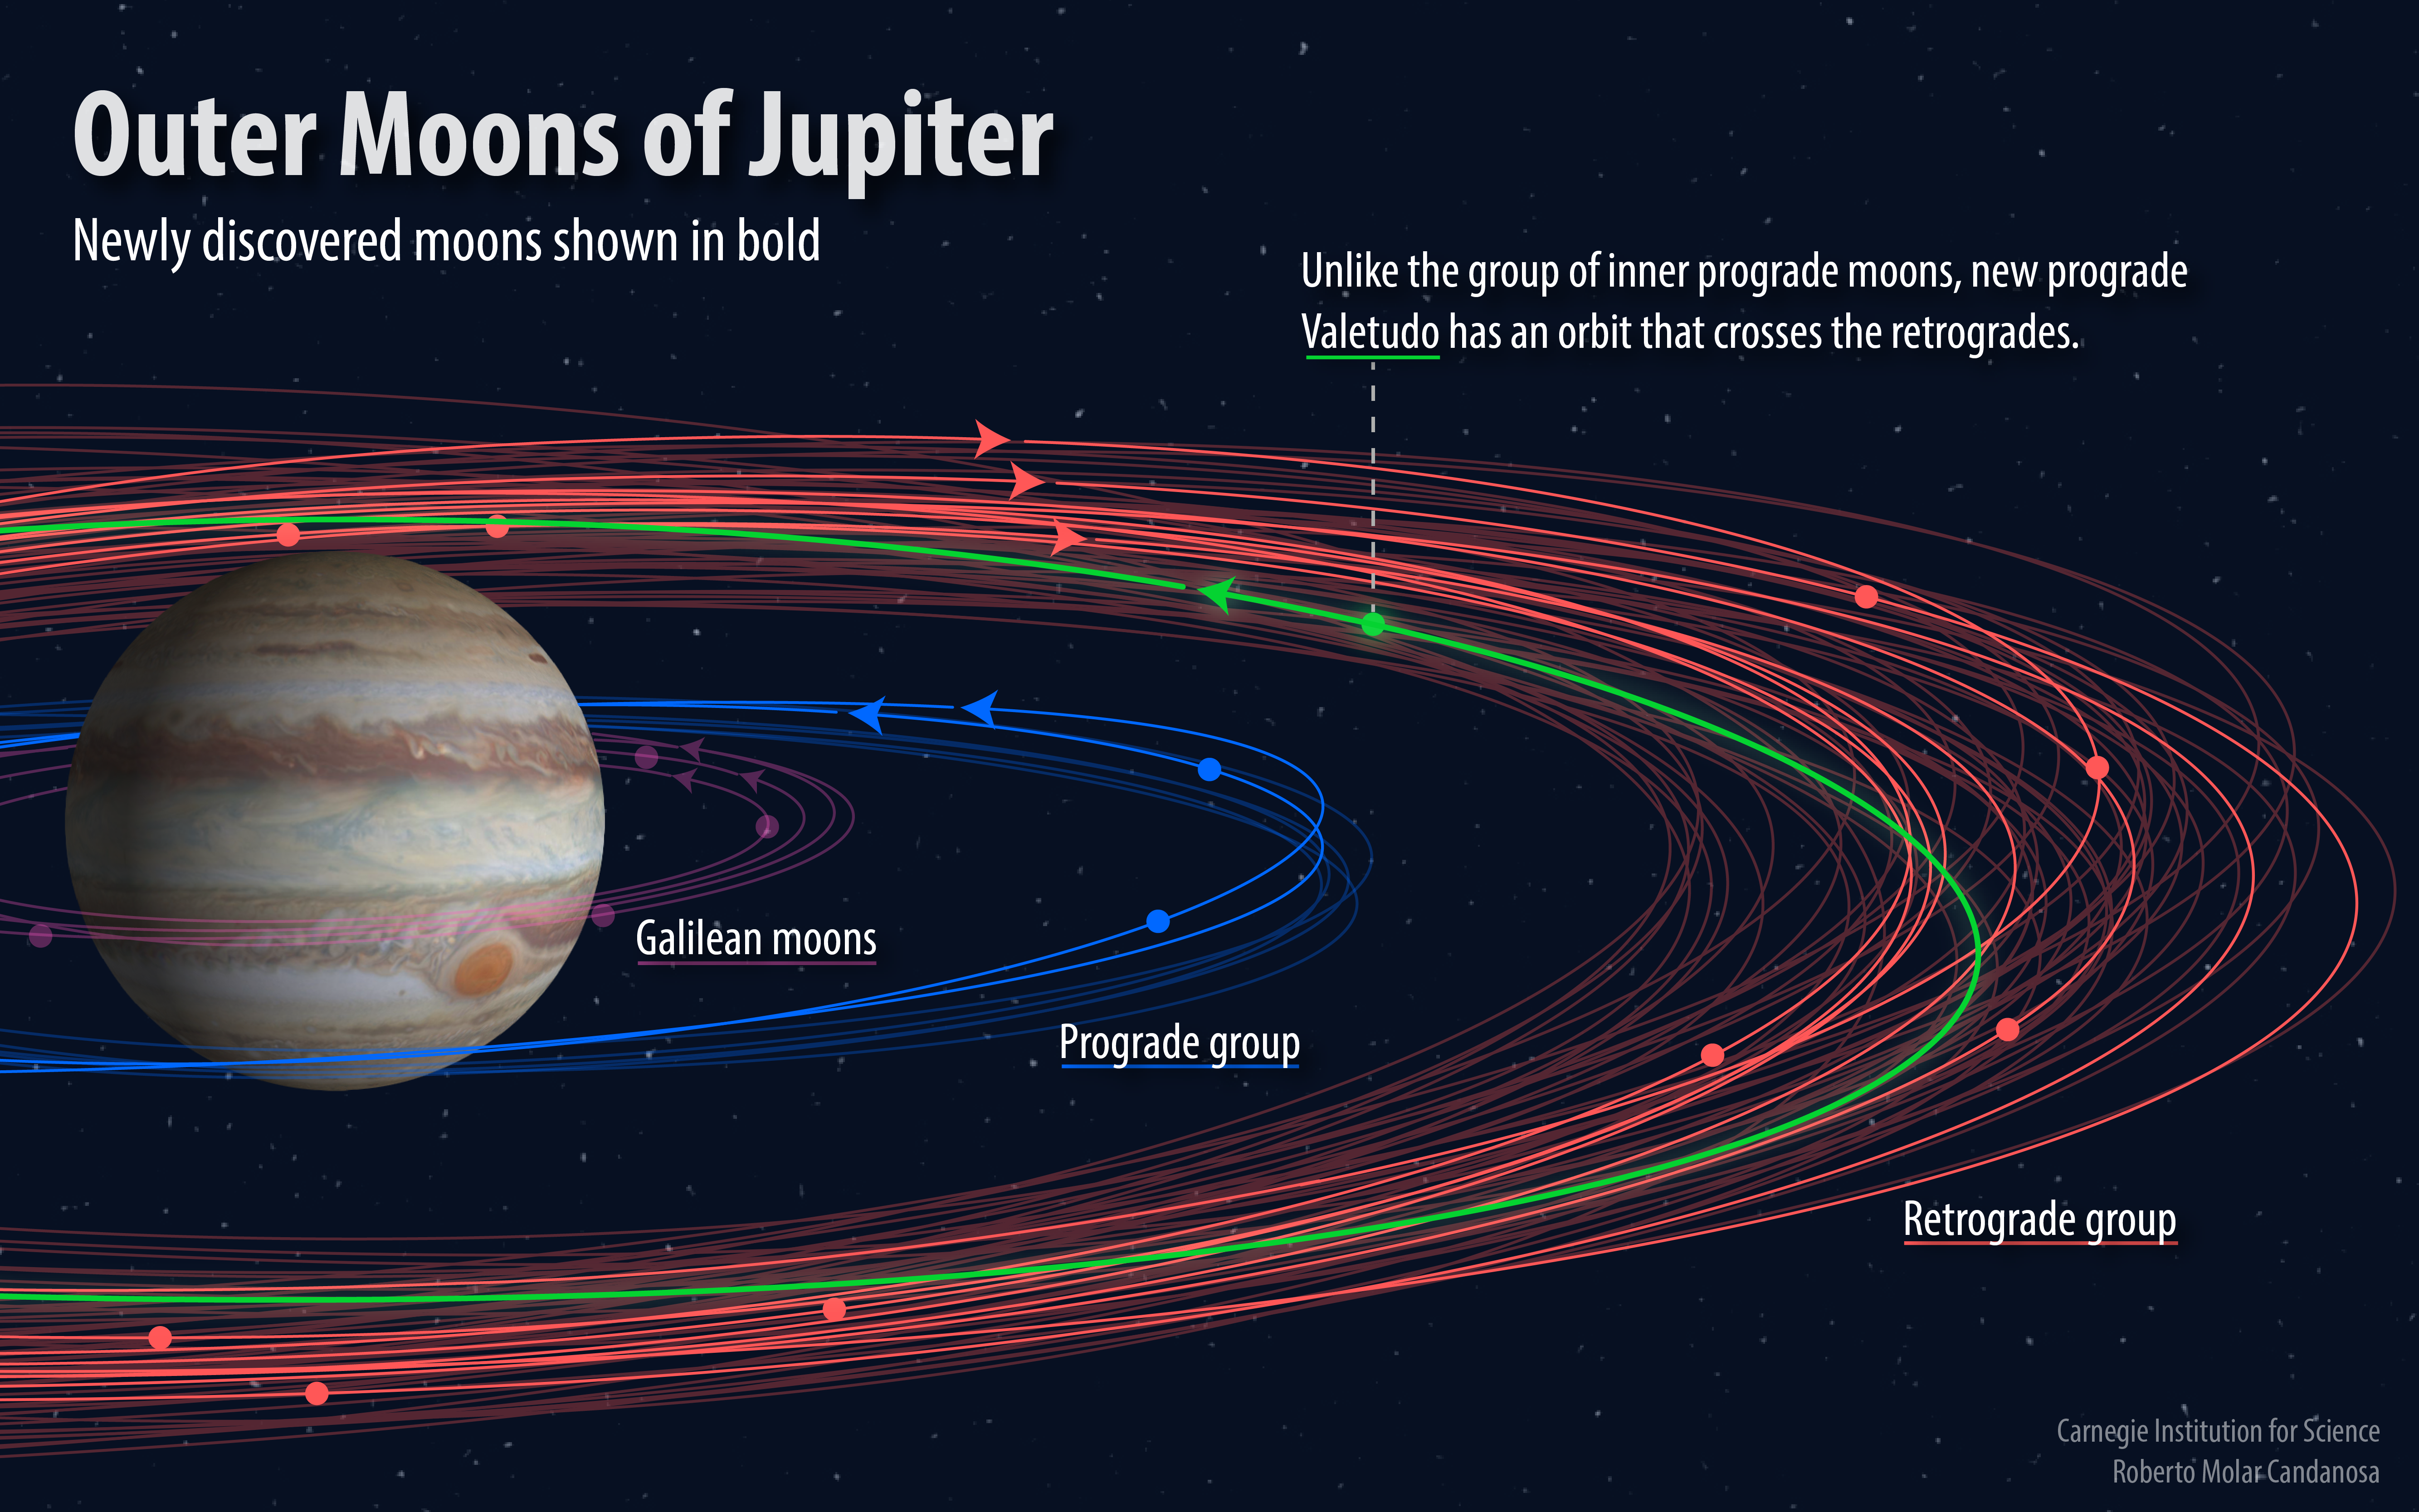 New moons of jupiter